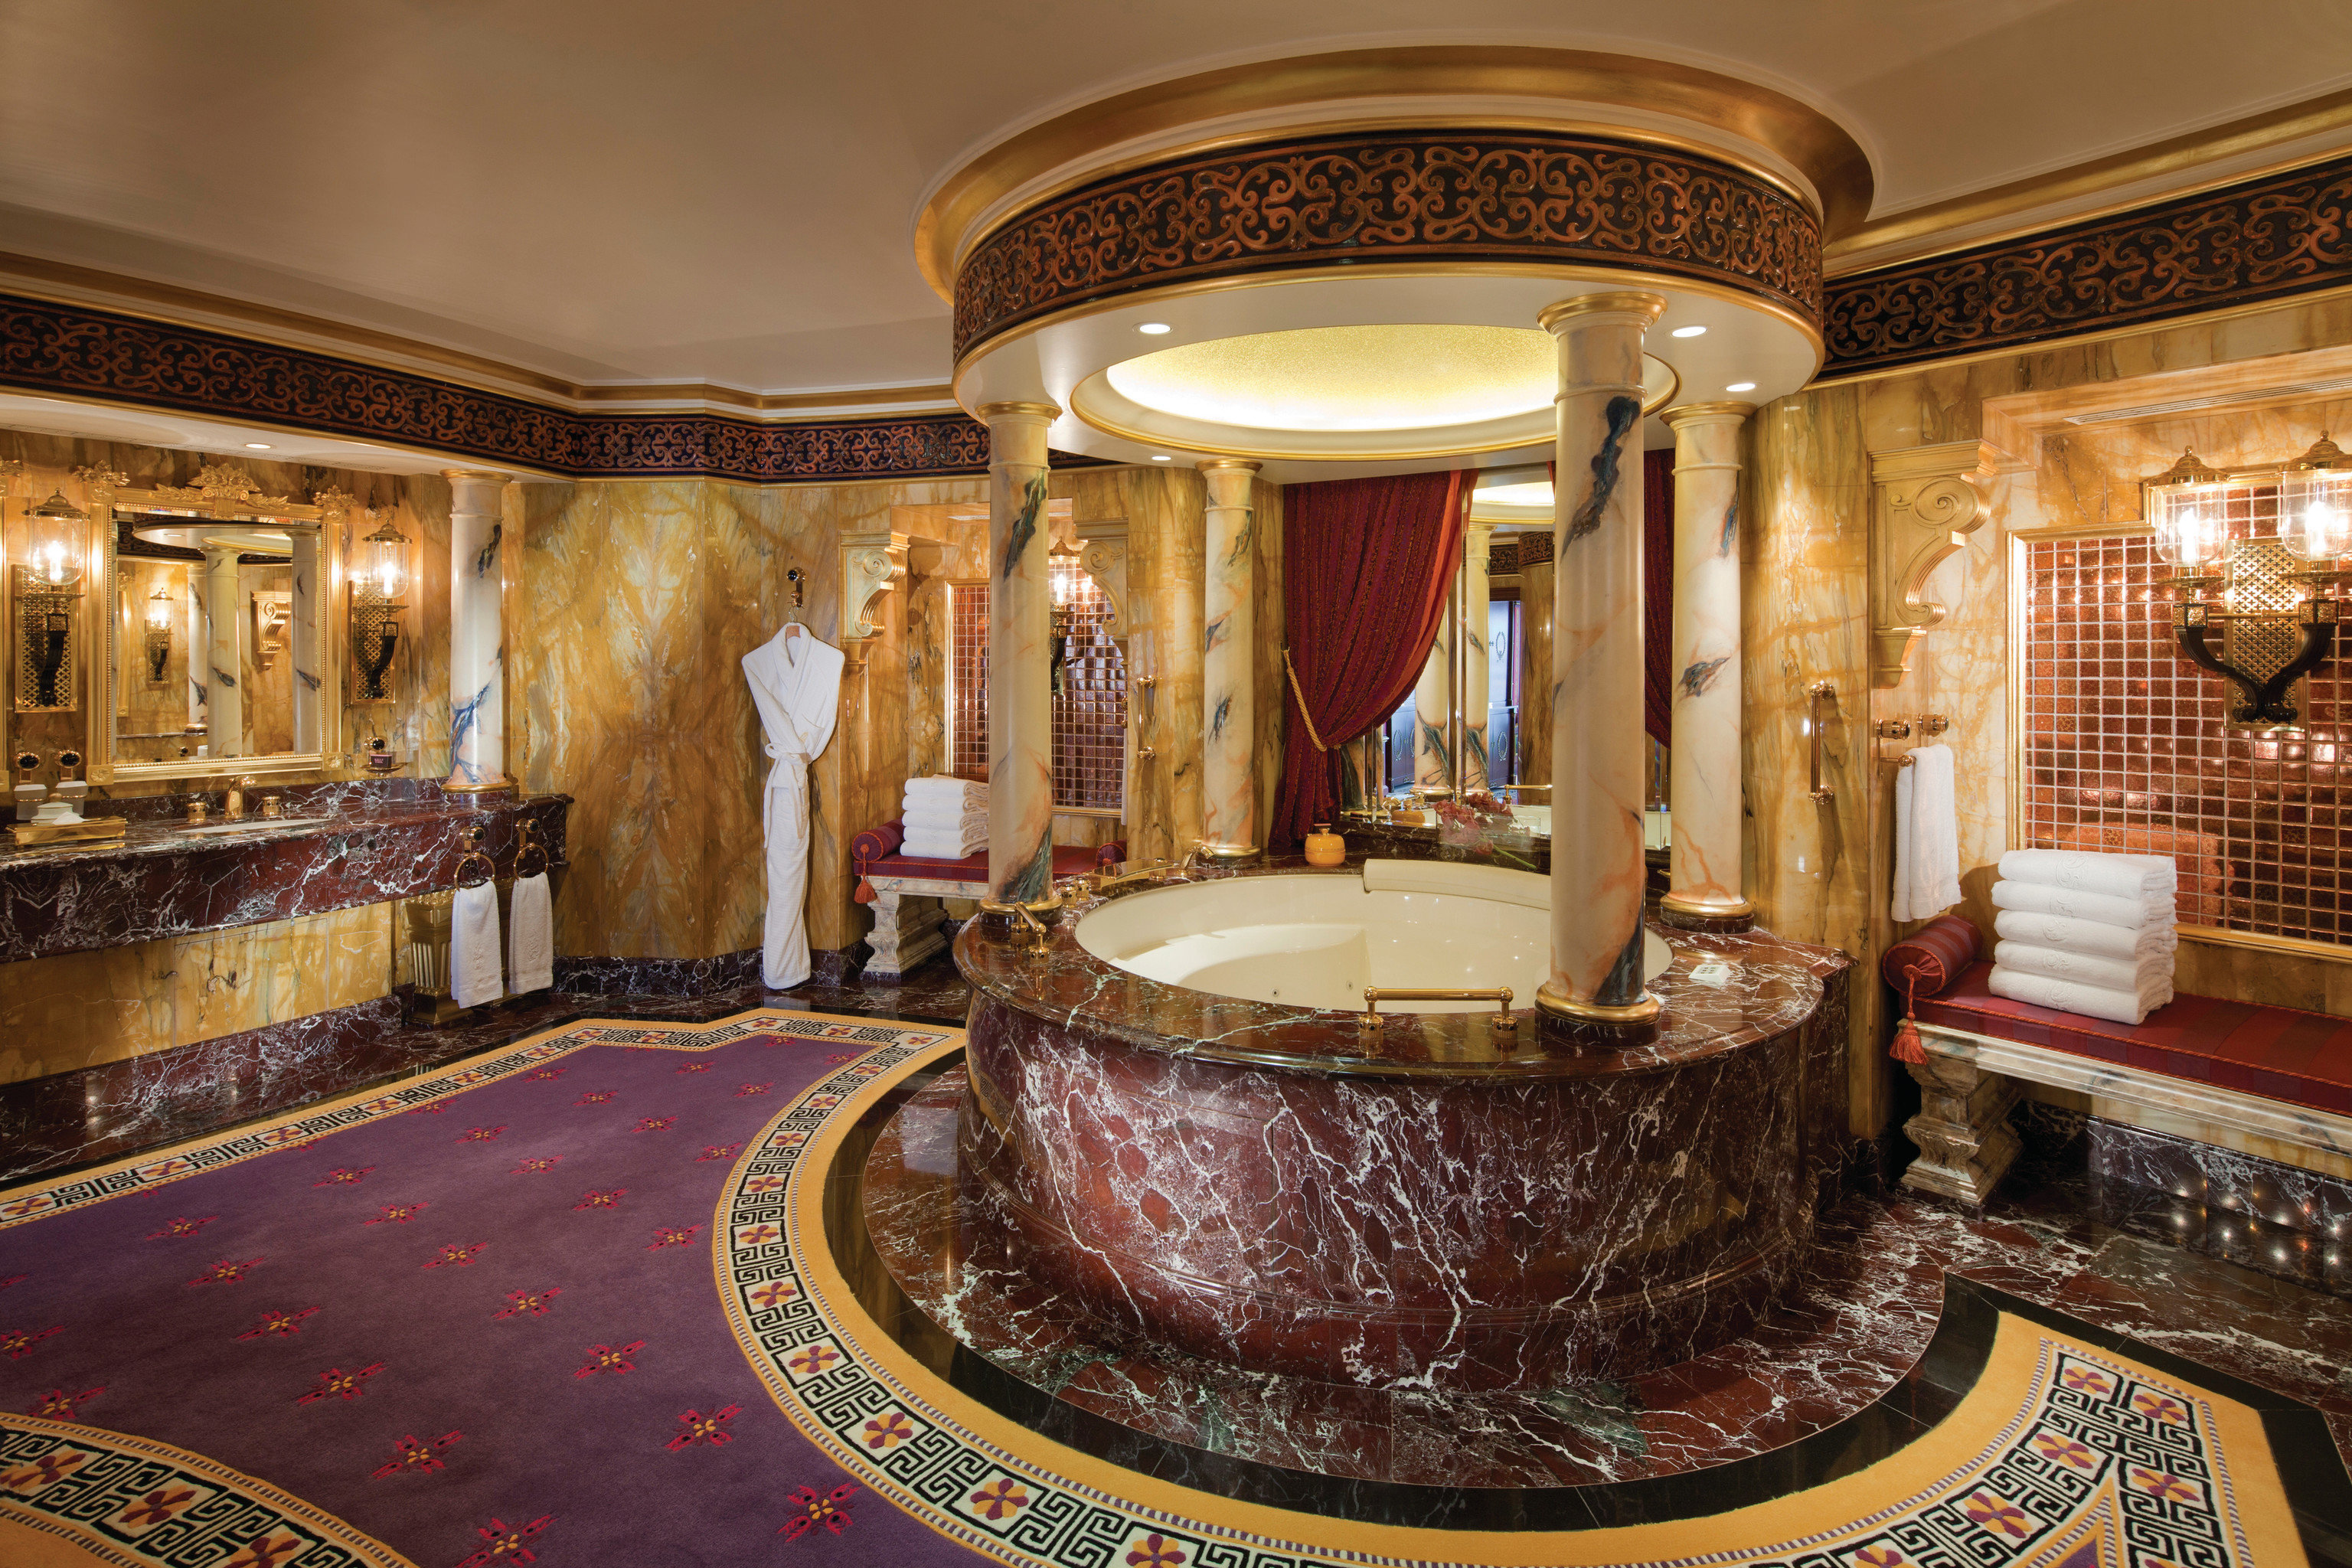 Dubai Hotels Luxury Travel Middle East room Lobby interior design function hall ceiling estate flooring furniture hall